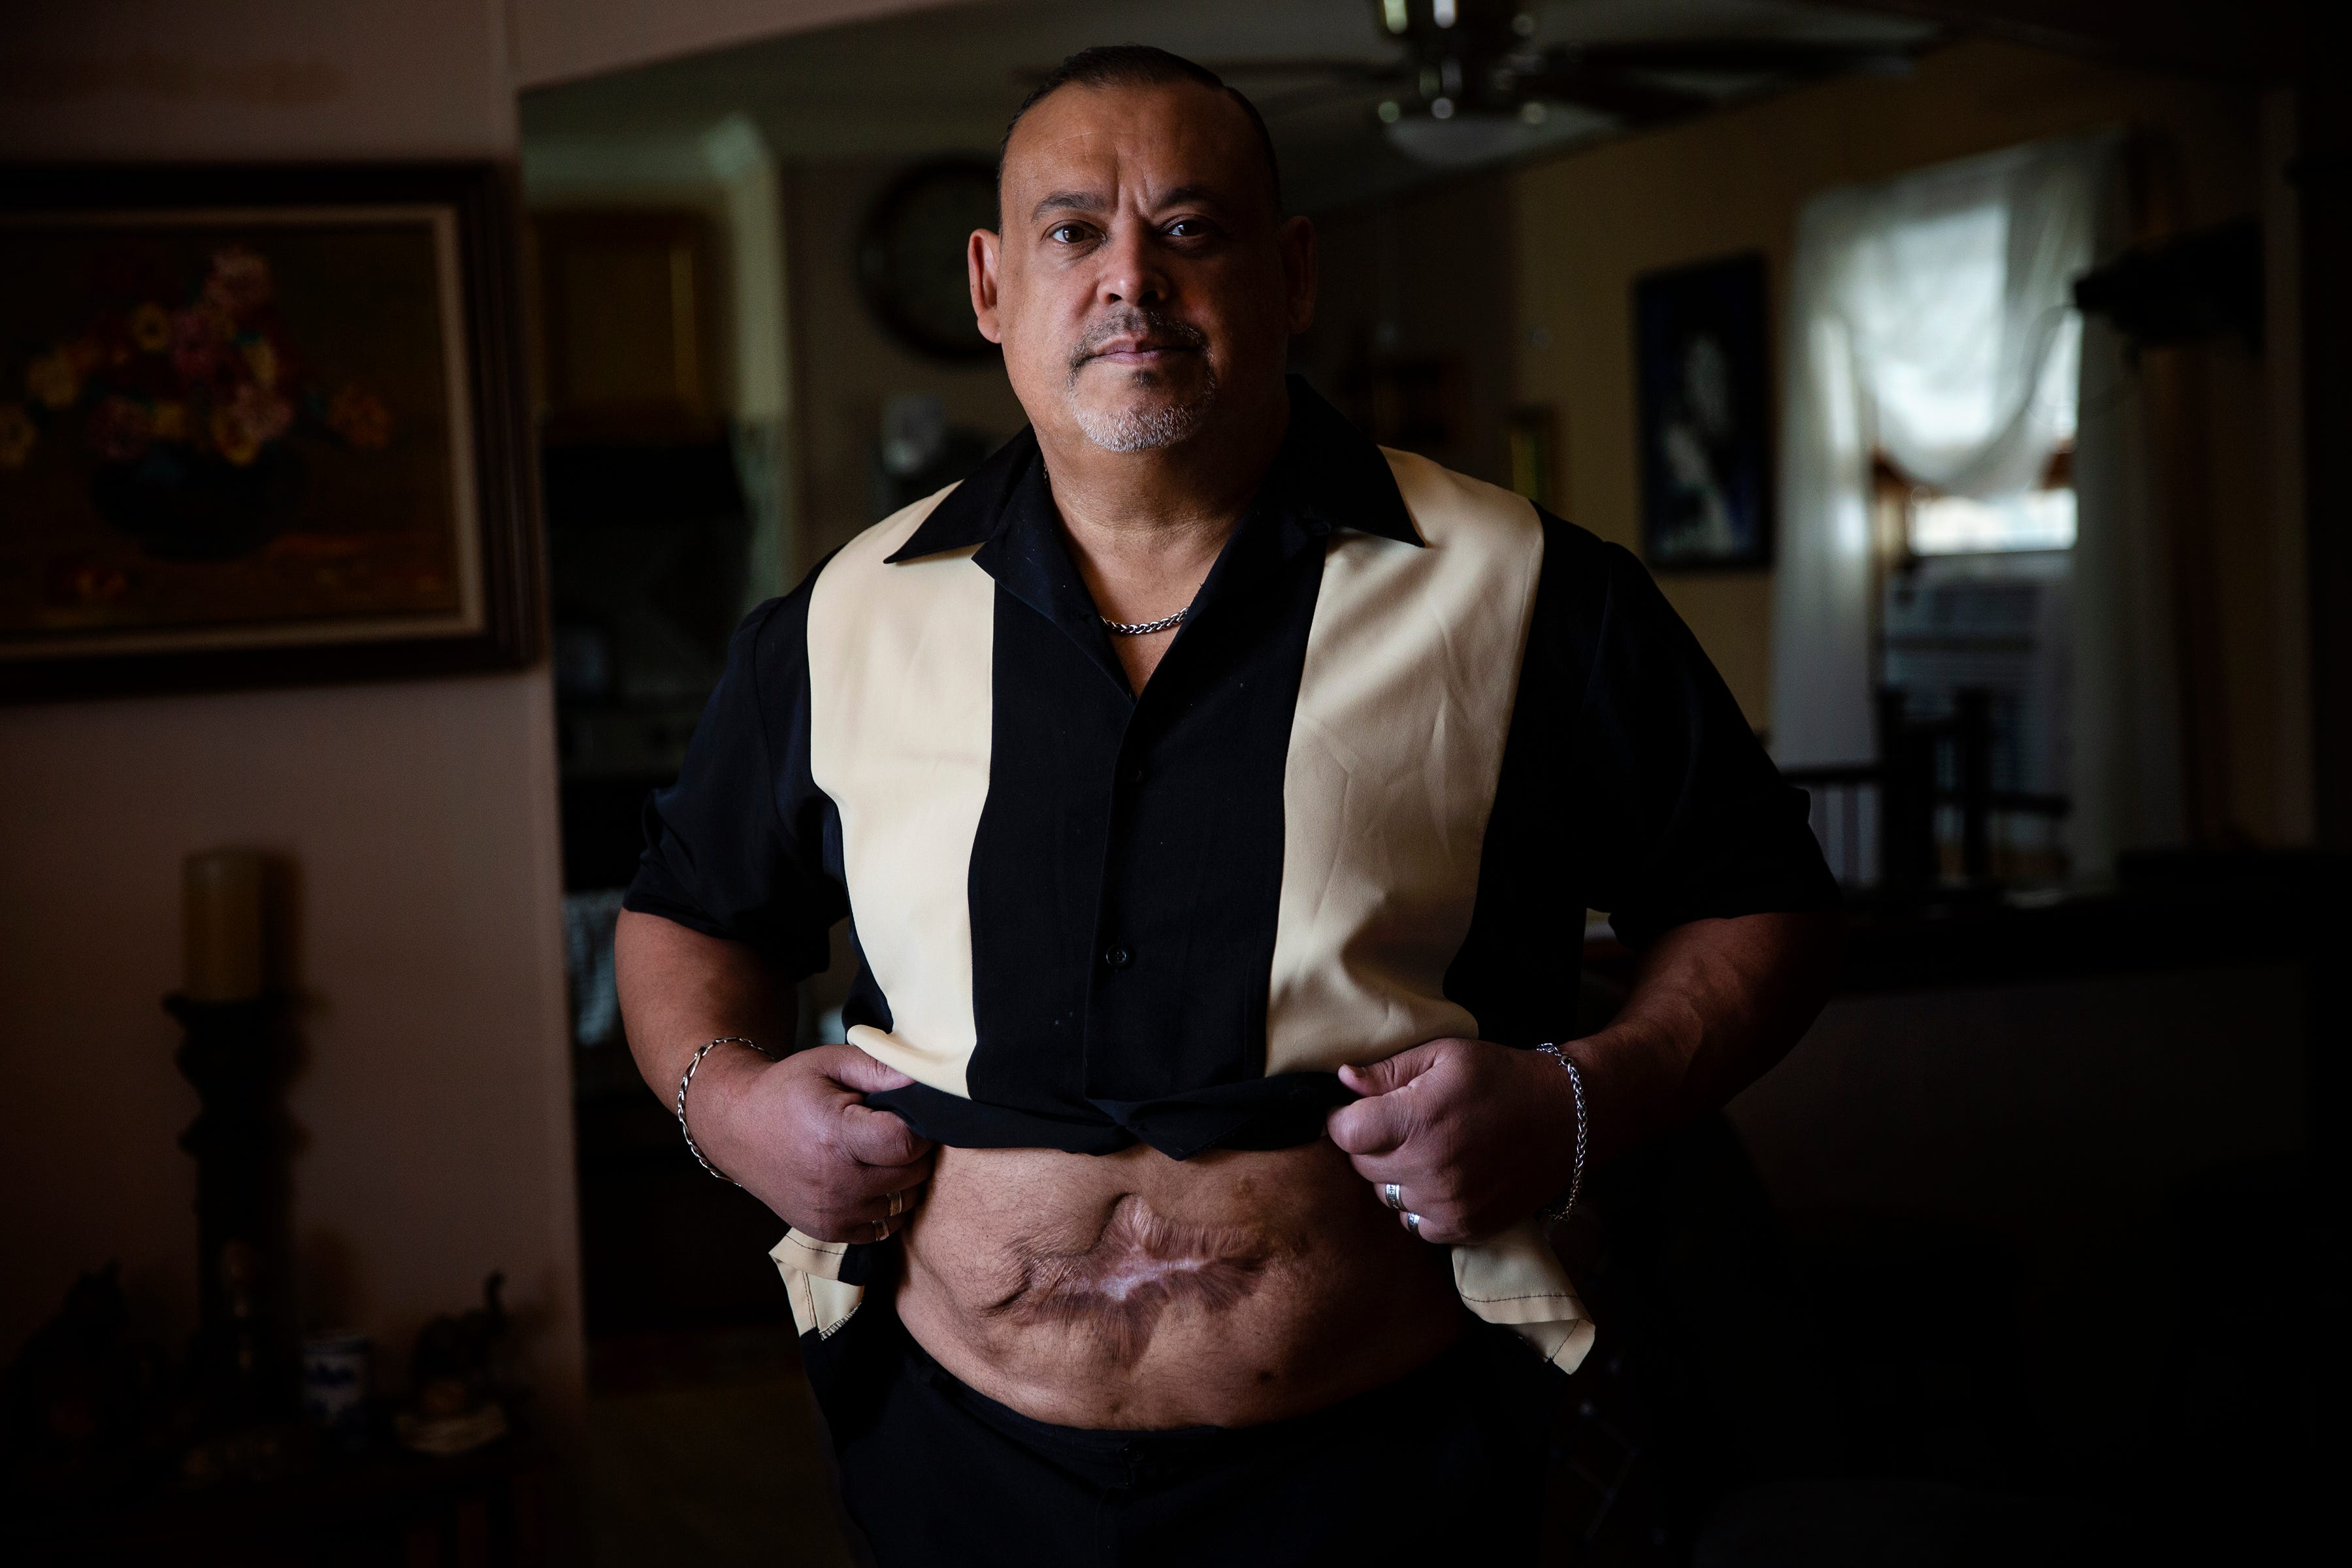 """Ricardo """"Rick"""" Martinez was hospitalized in 2013 after Dr. Amaryllis Pascual perforated his small bowel in multiple places and committed other errors during liposuction. Martinez, now 56, shows his scar."""